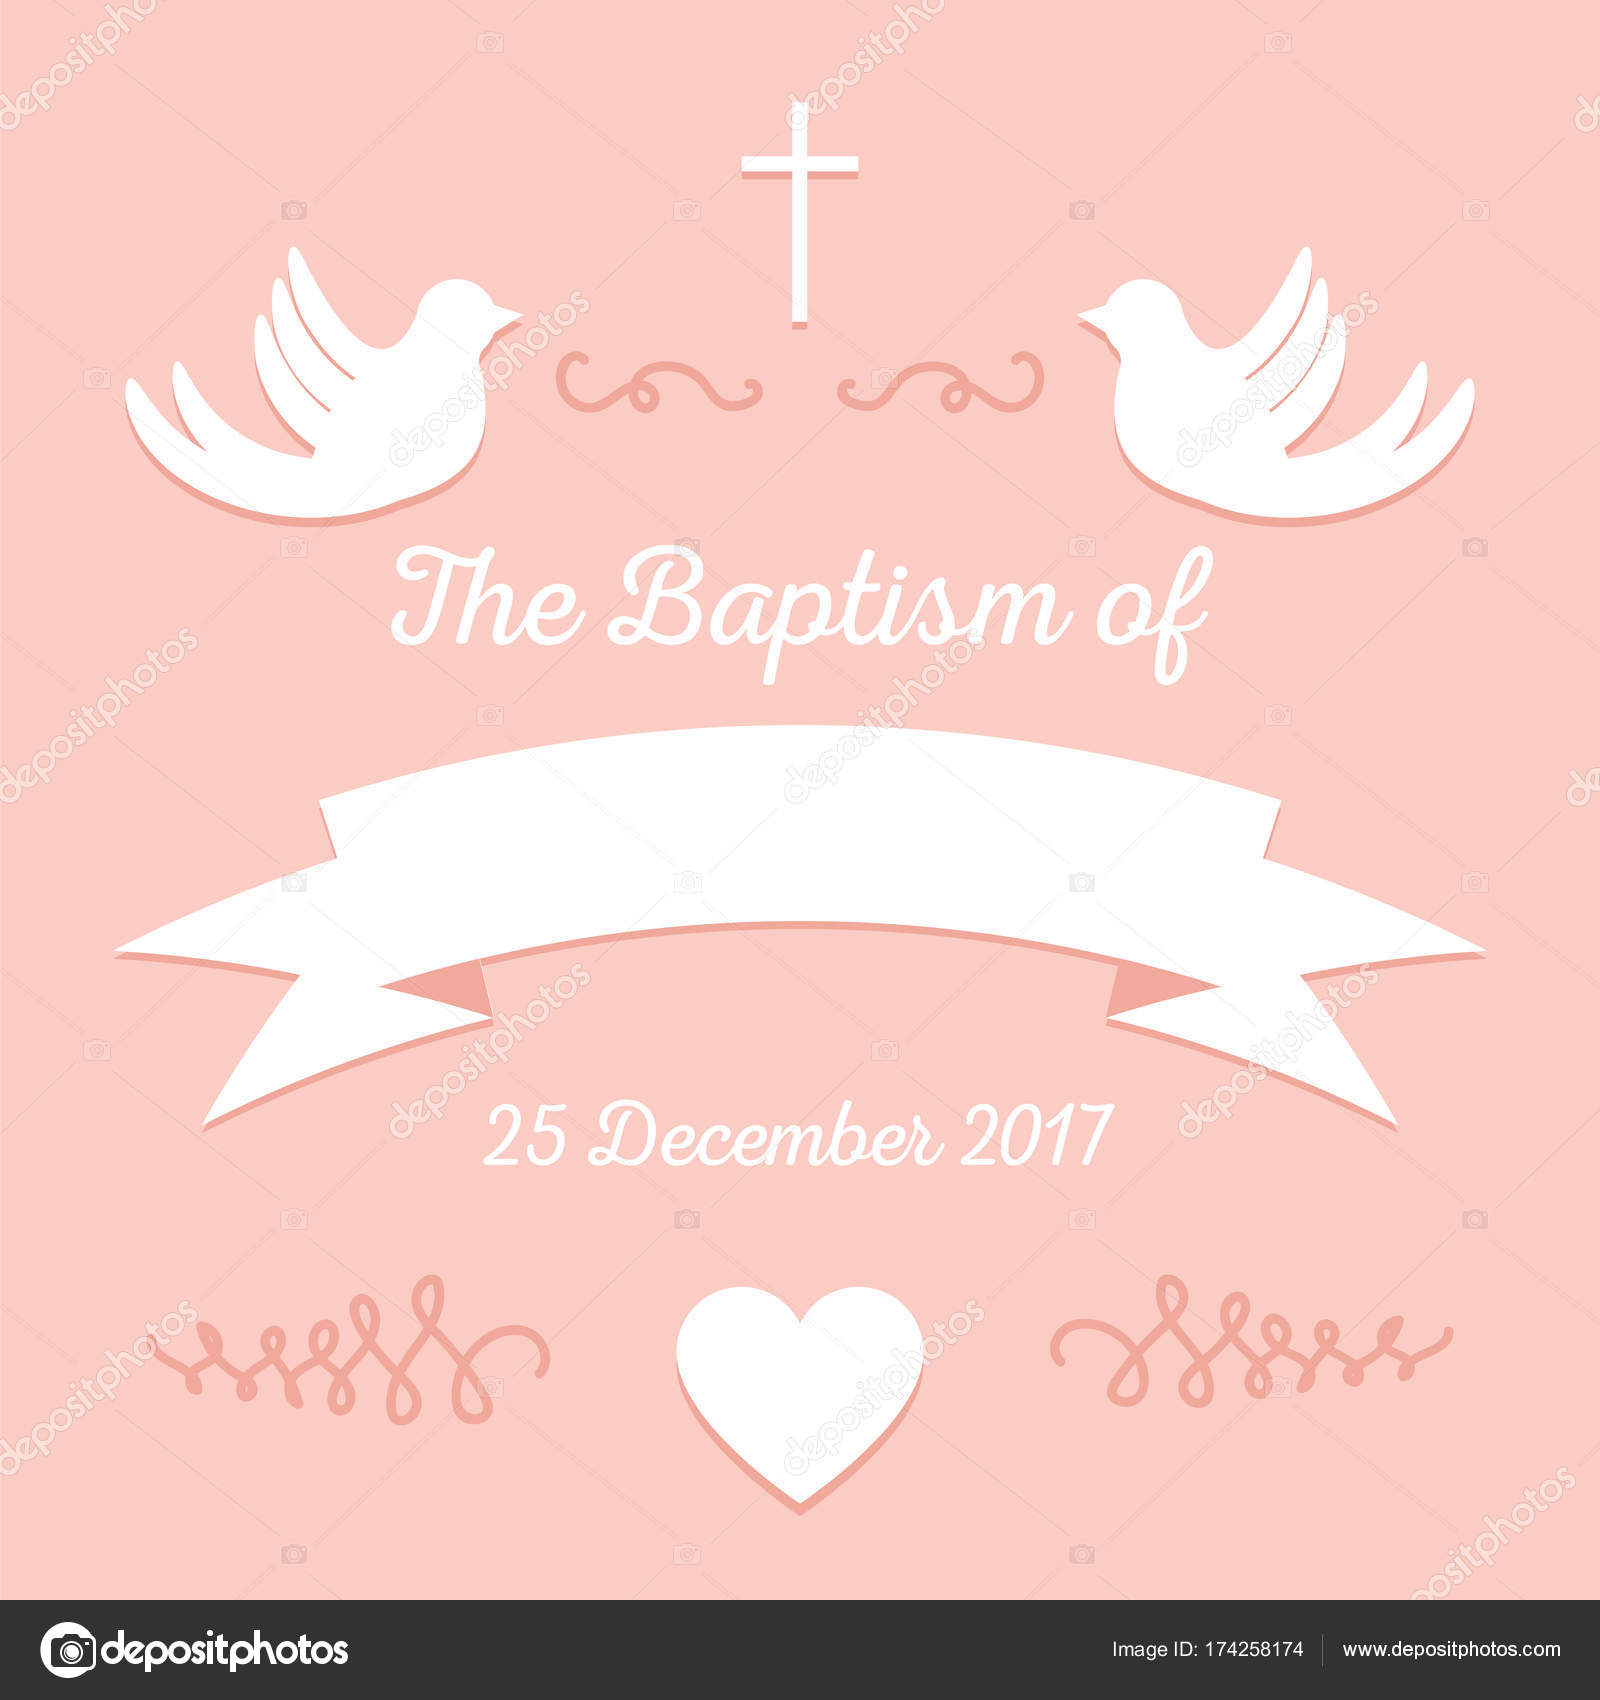 Baptism Invitation Template Stock Vector C Greenvector 174258174